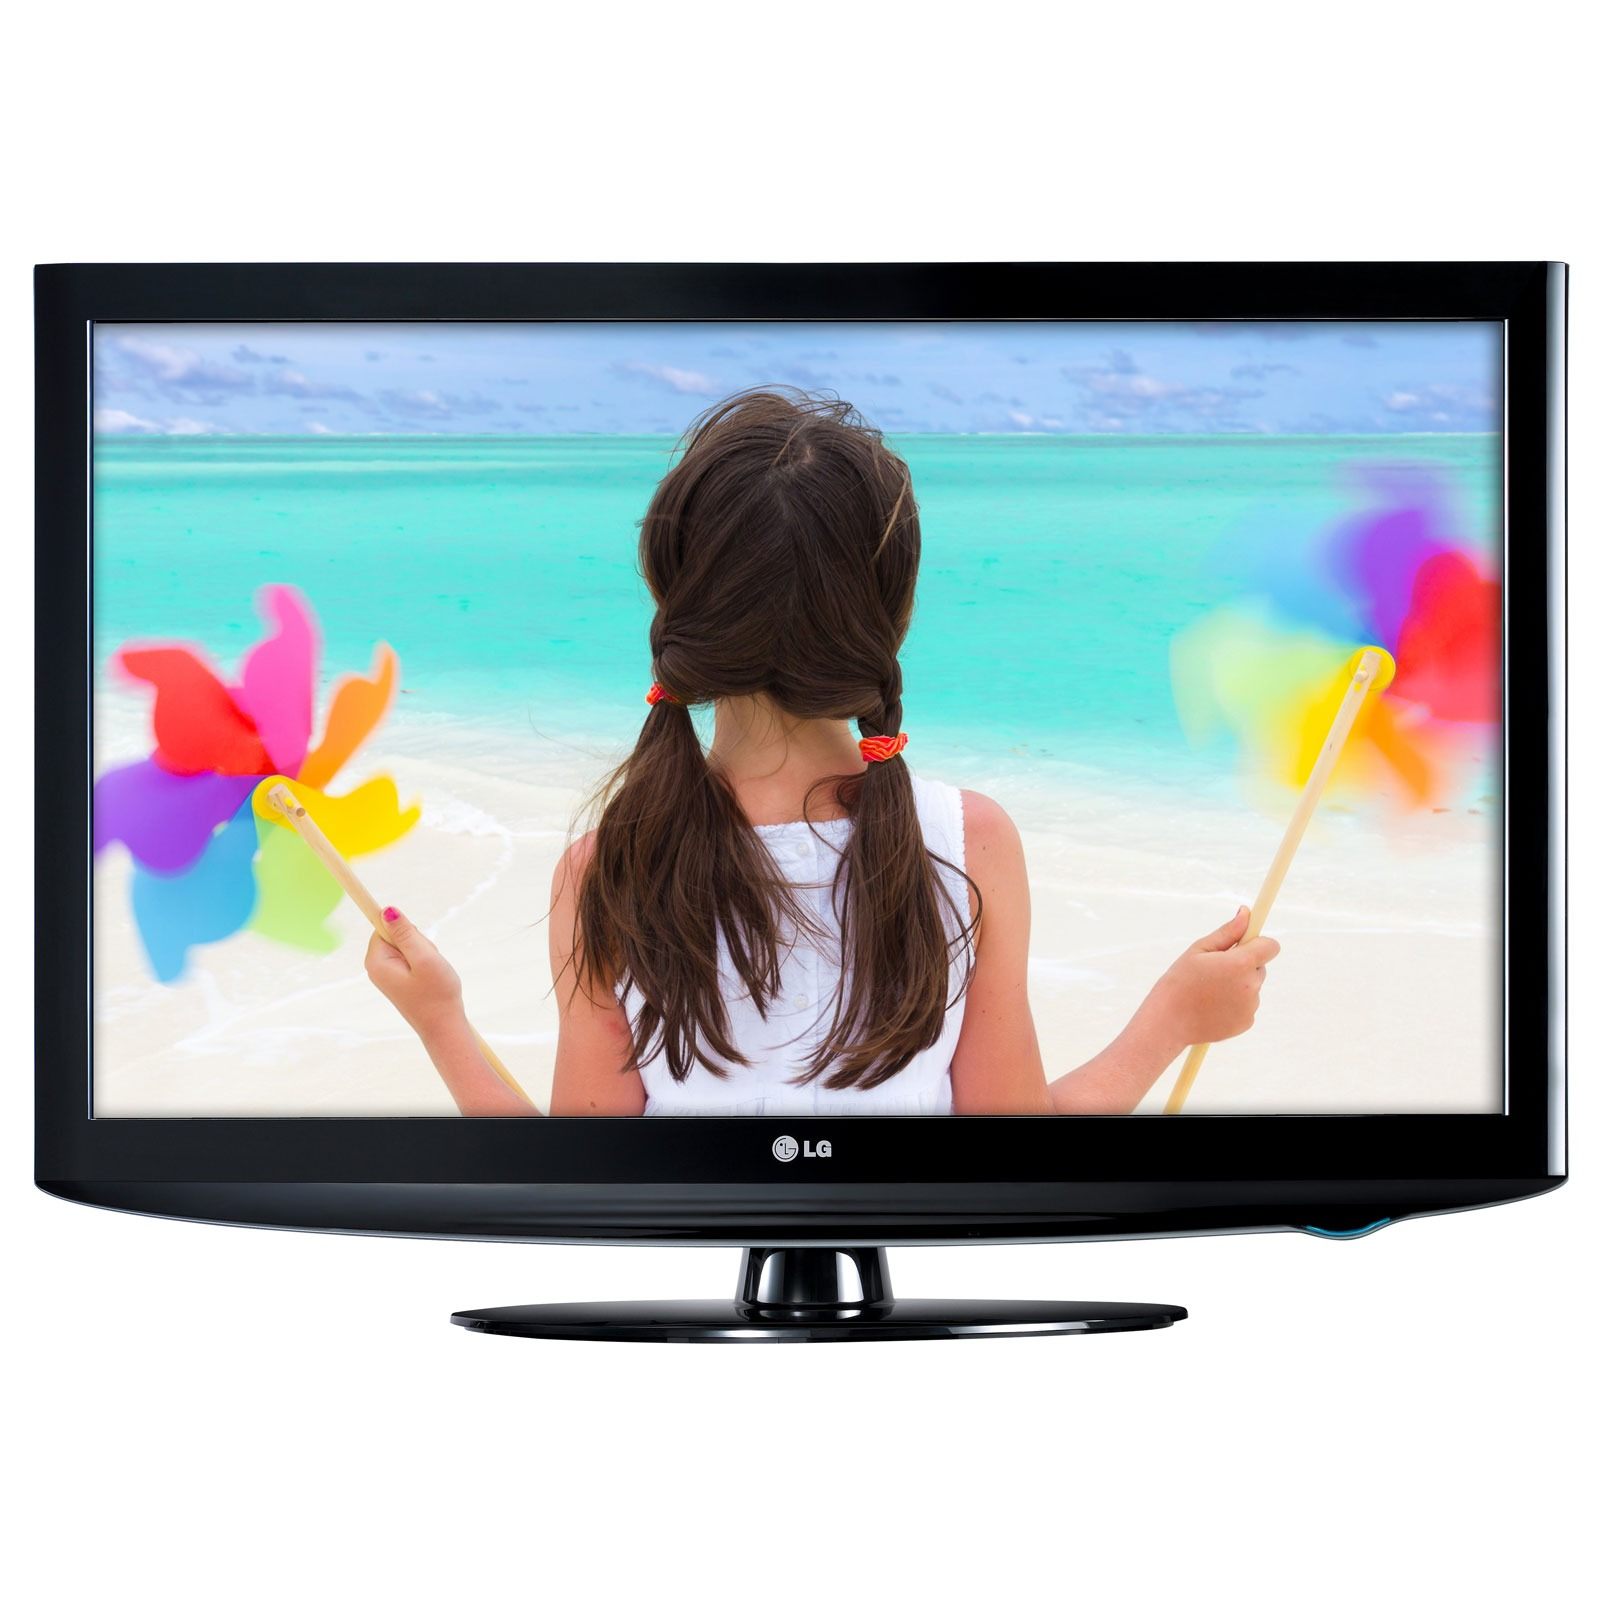 how to change lg tv from cable to antenna